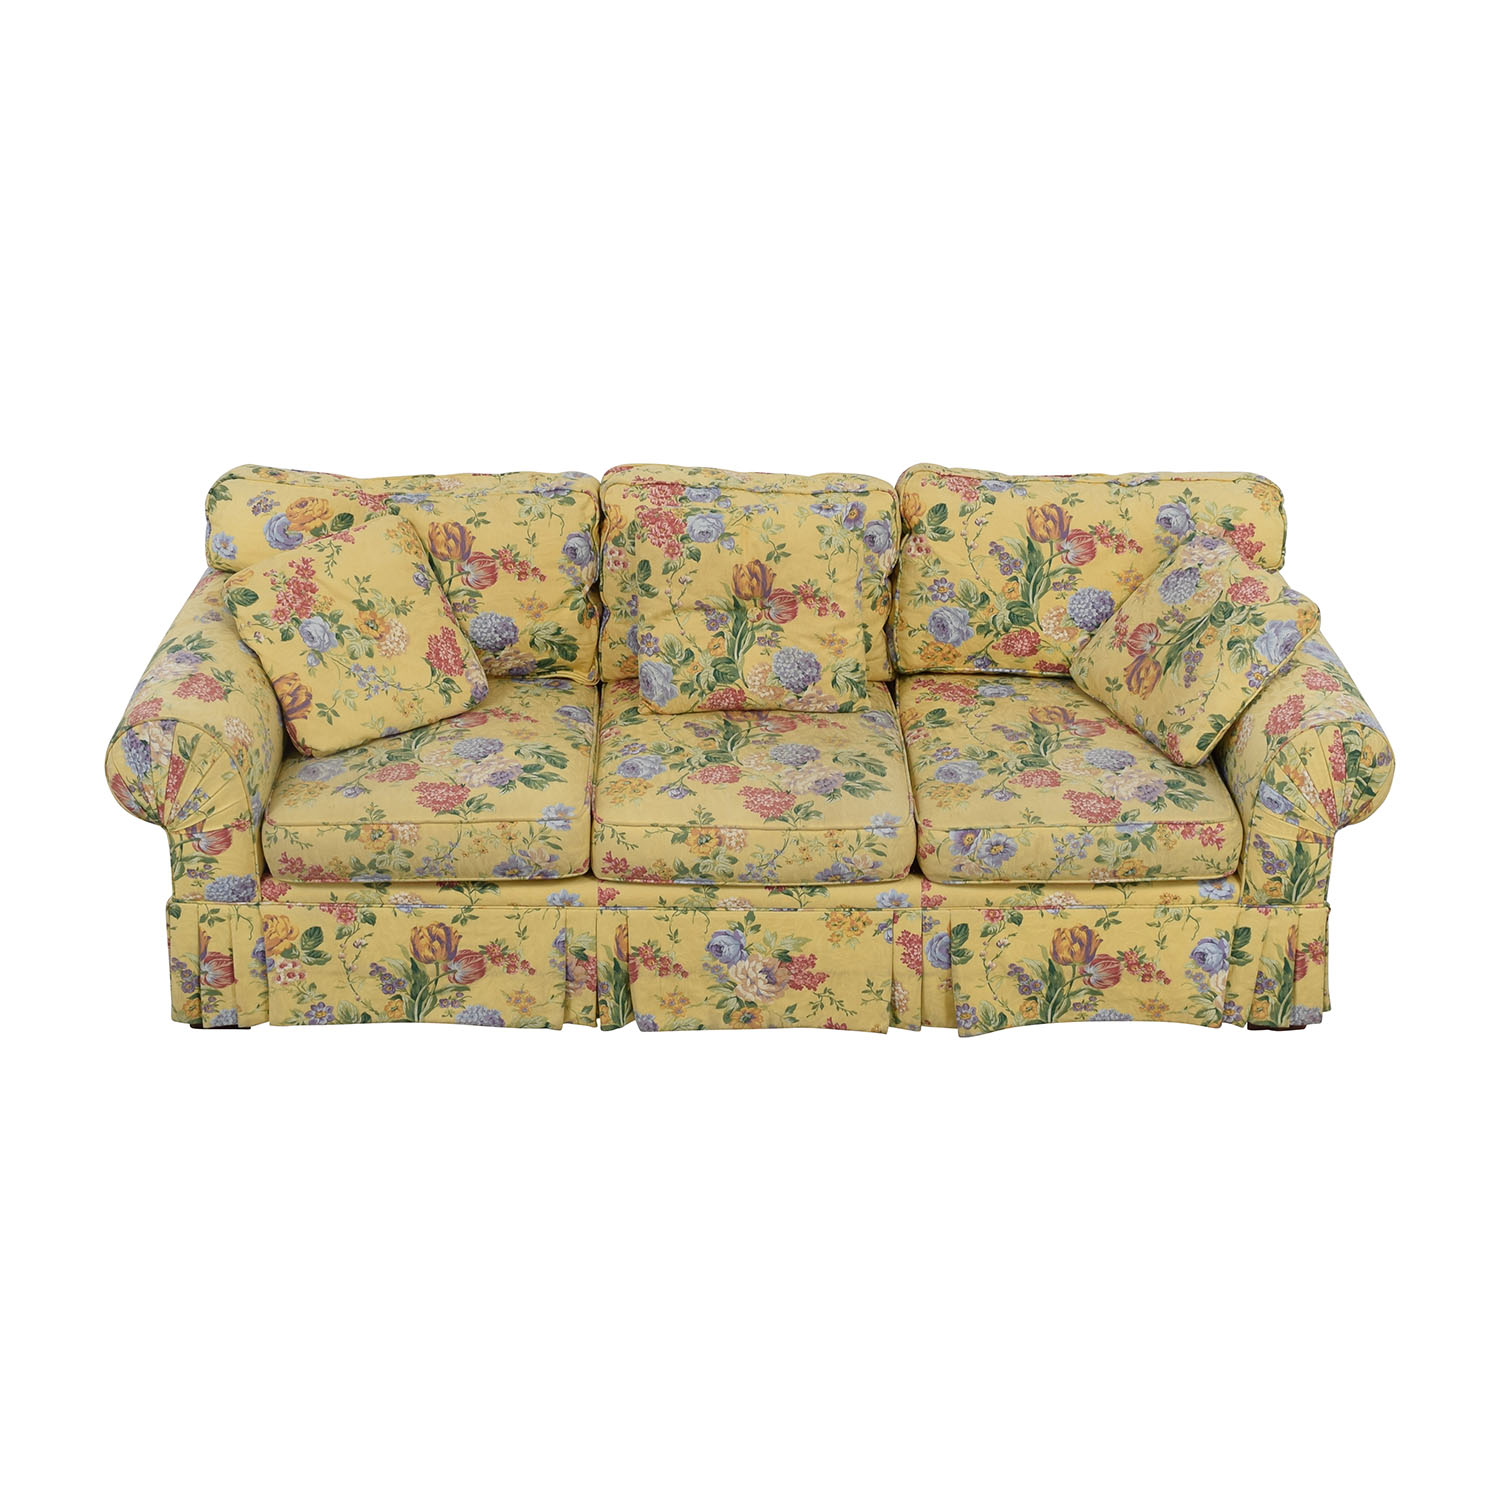 Alexvale Alexvale Yellow Floral Two-Cushion Couch nyc